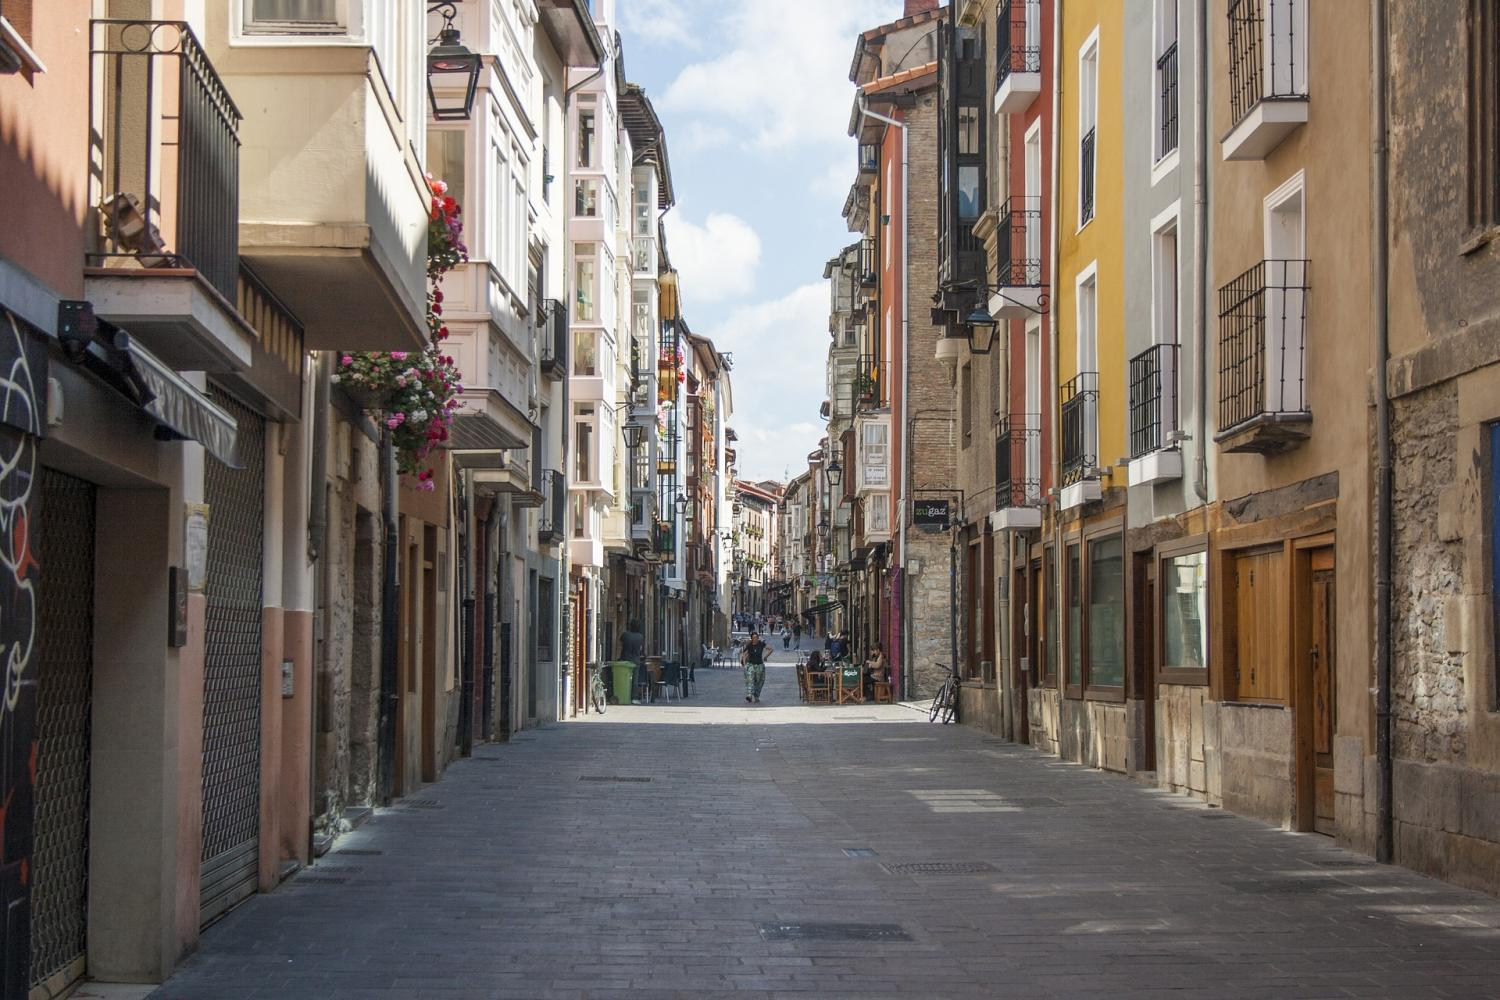 Full Day Tour from Bilbao: from the Mountains of Vitoria to the Coast of Vizcaya